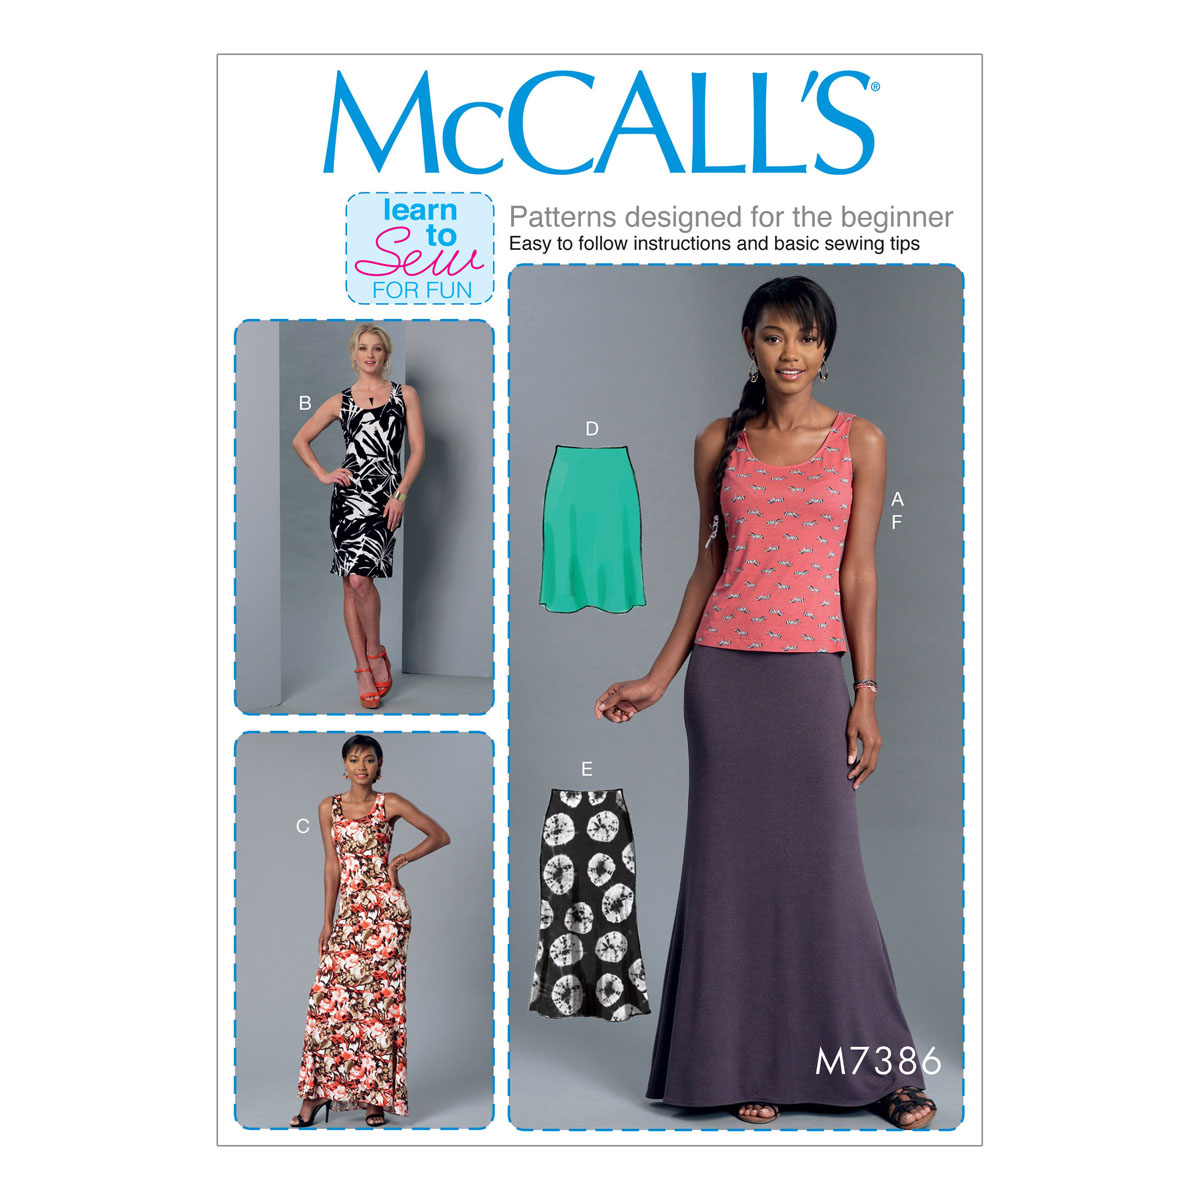 Beginner Sewing Patterns Mccalls Sewing Pattern M7386 Misses Knit Tank Top Dresses And